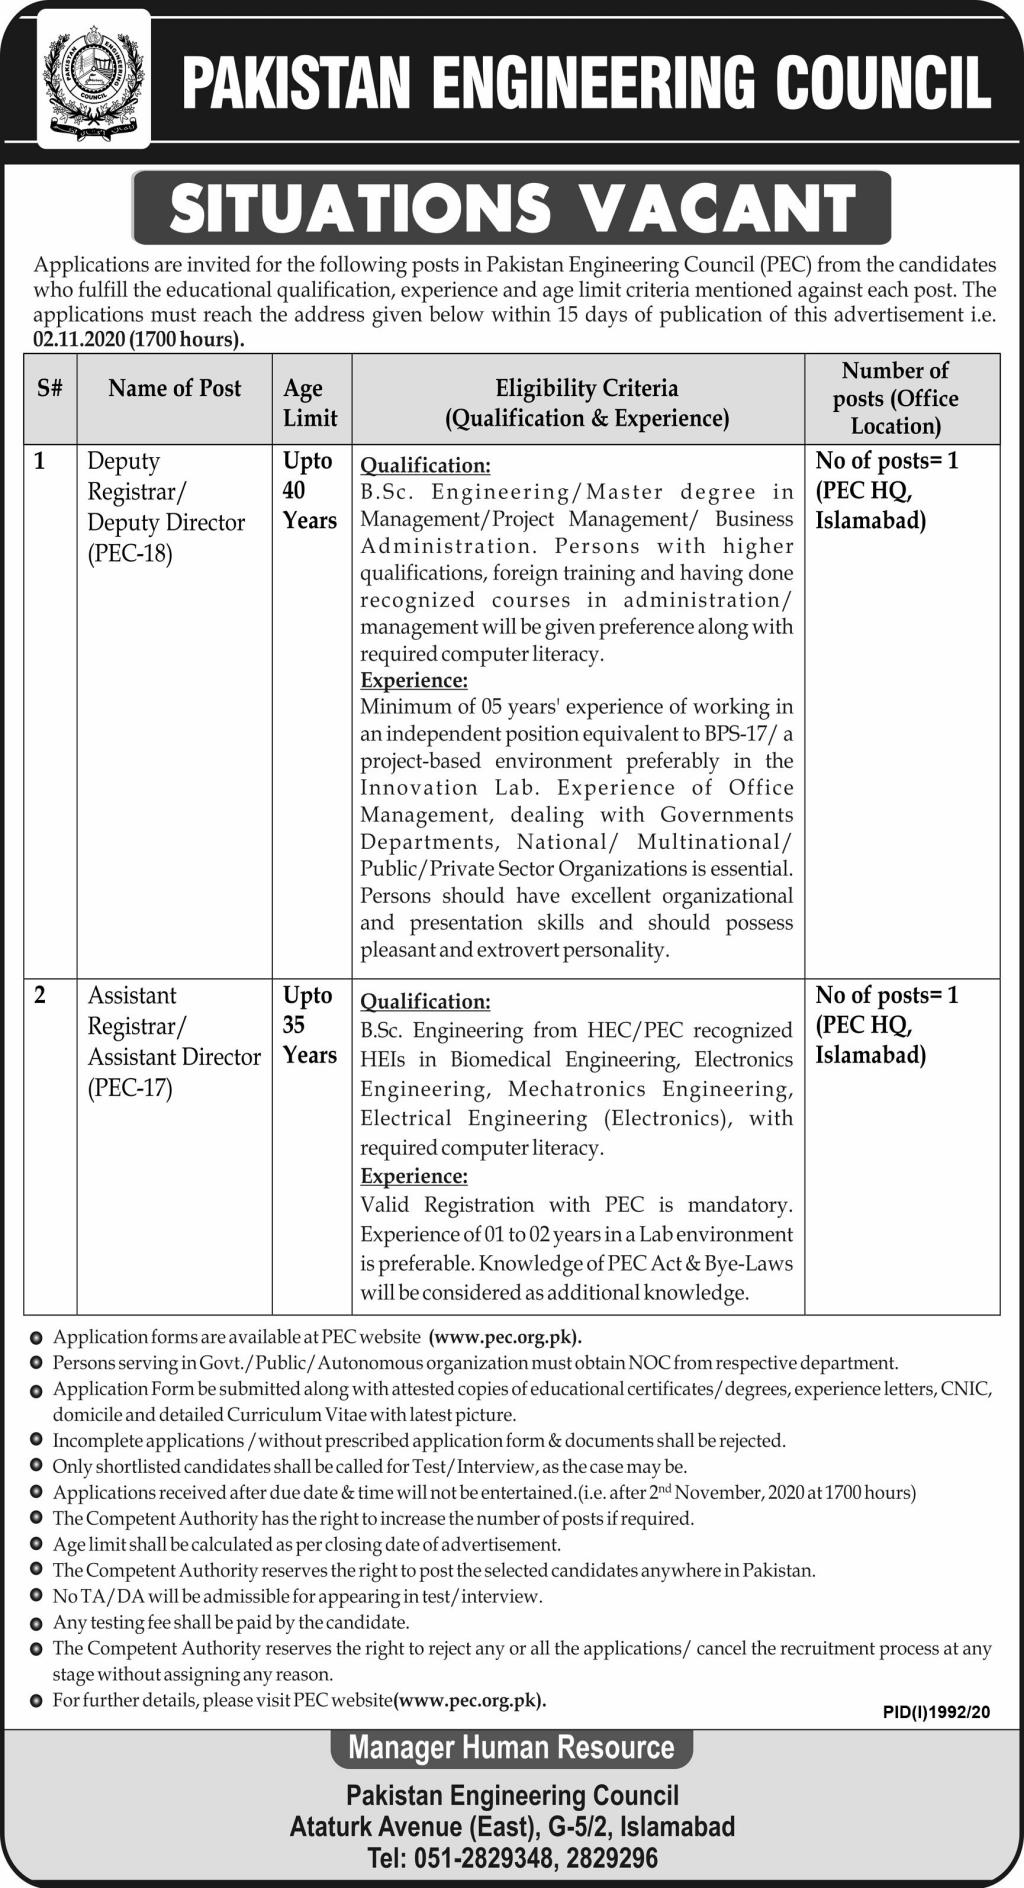 Pakistan Engineering Council PEC Job Advertisement in Pakistan Jobs 2020-2021 - Online Apply - www.pec.org.pk